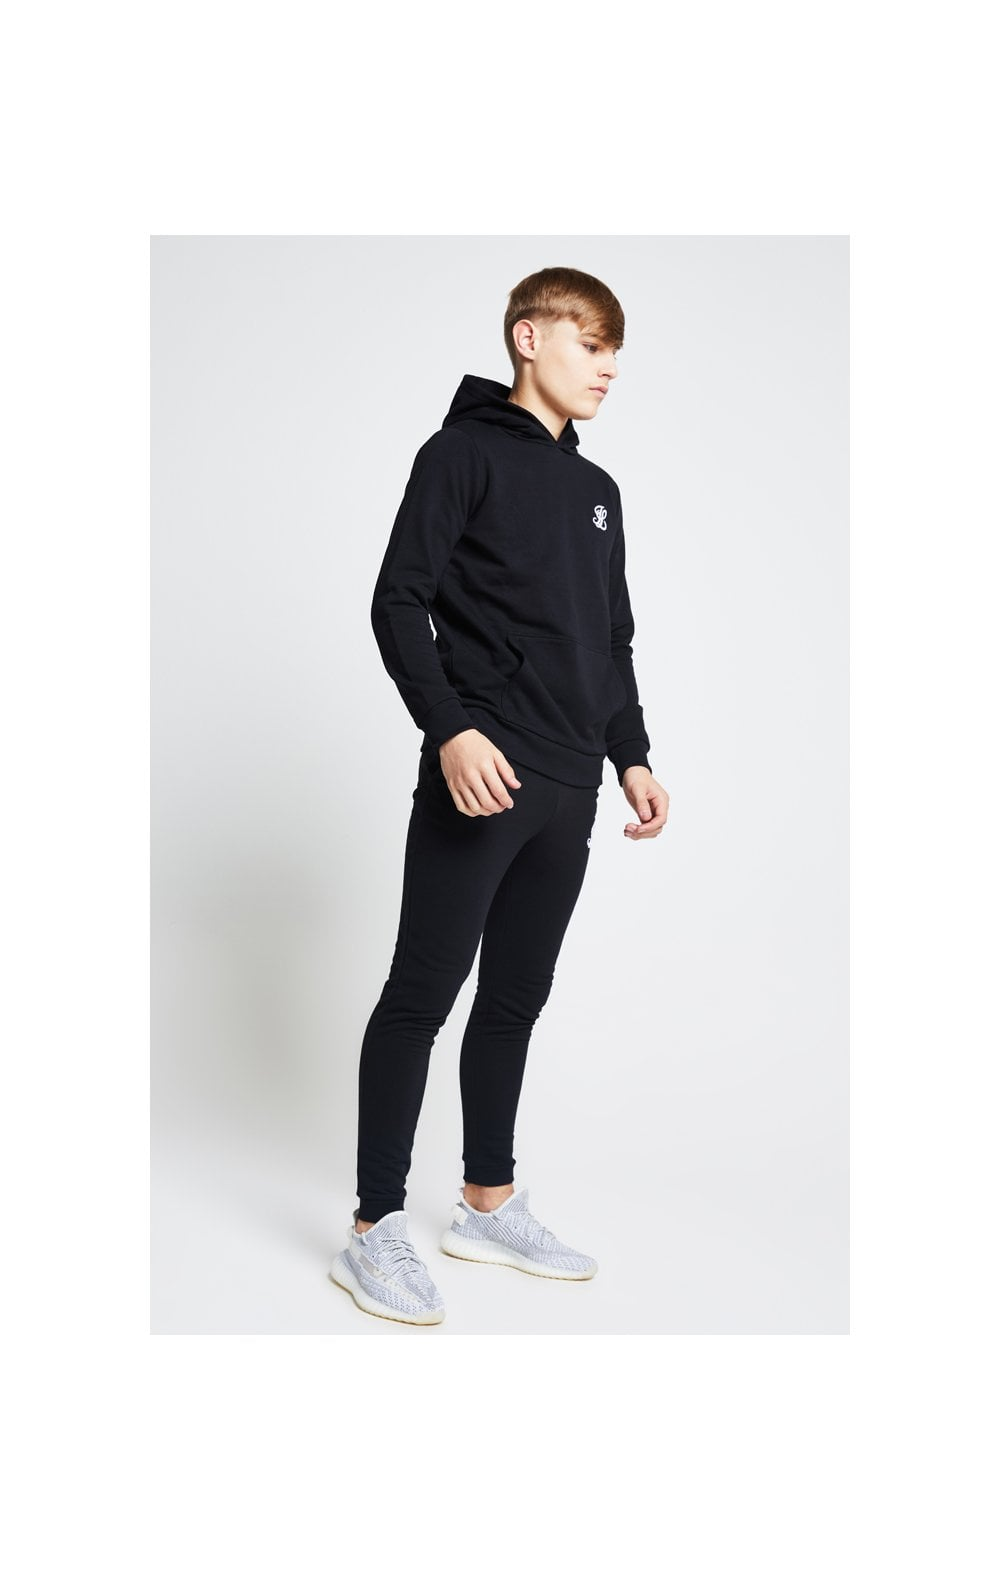 Illusive London Overhead Hoodie - Black (3)